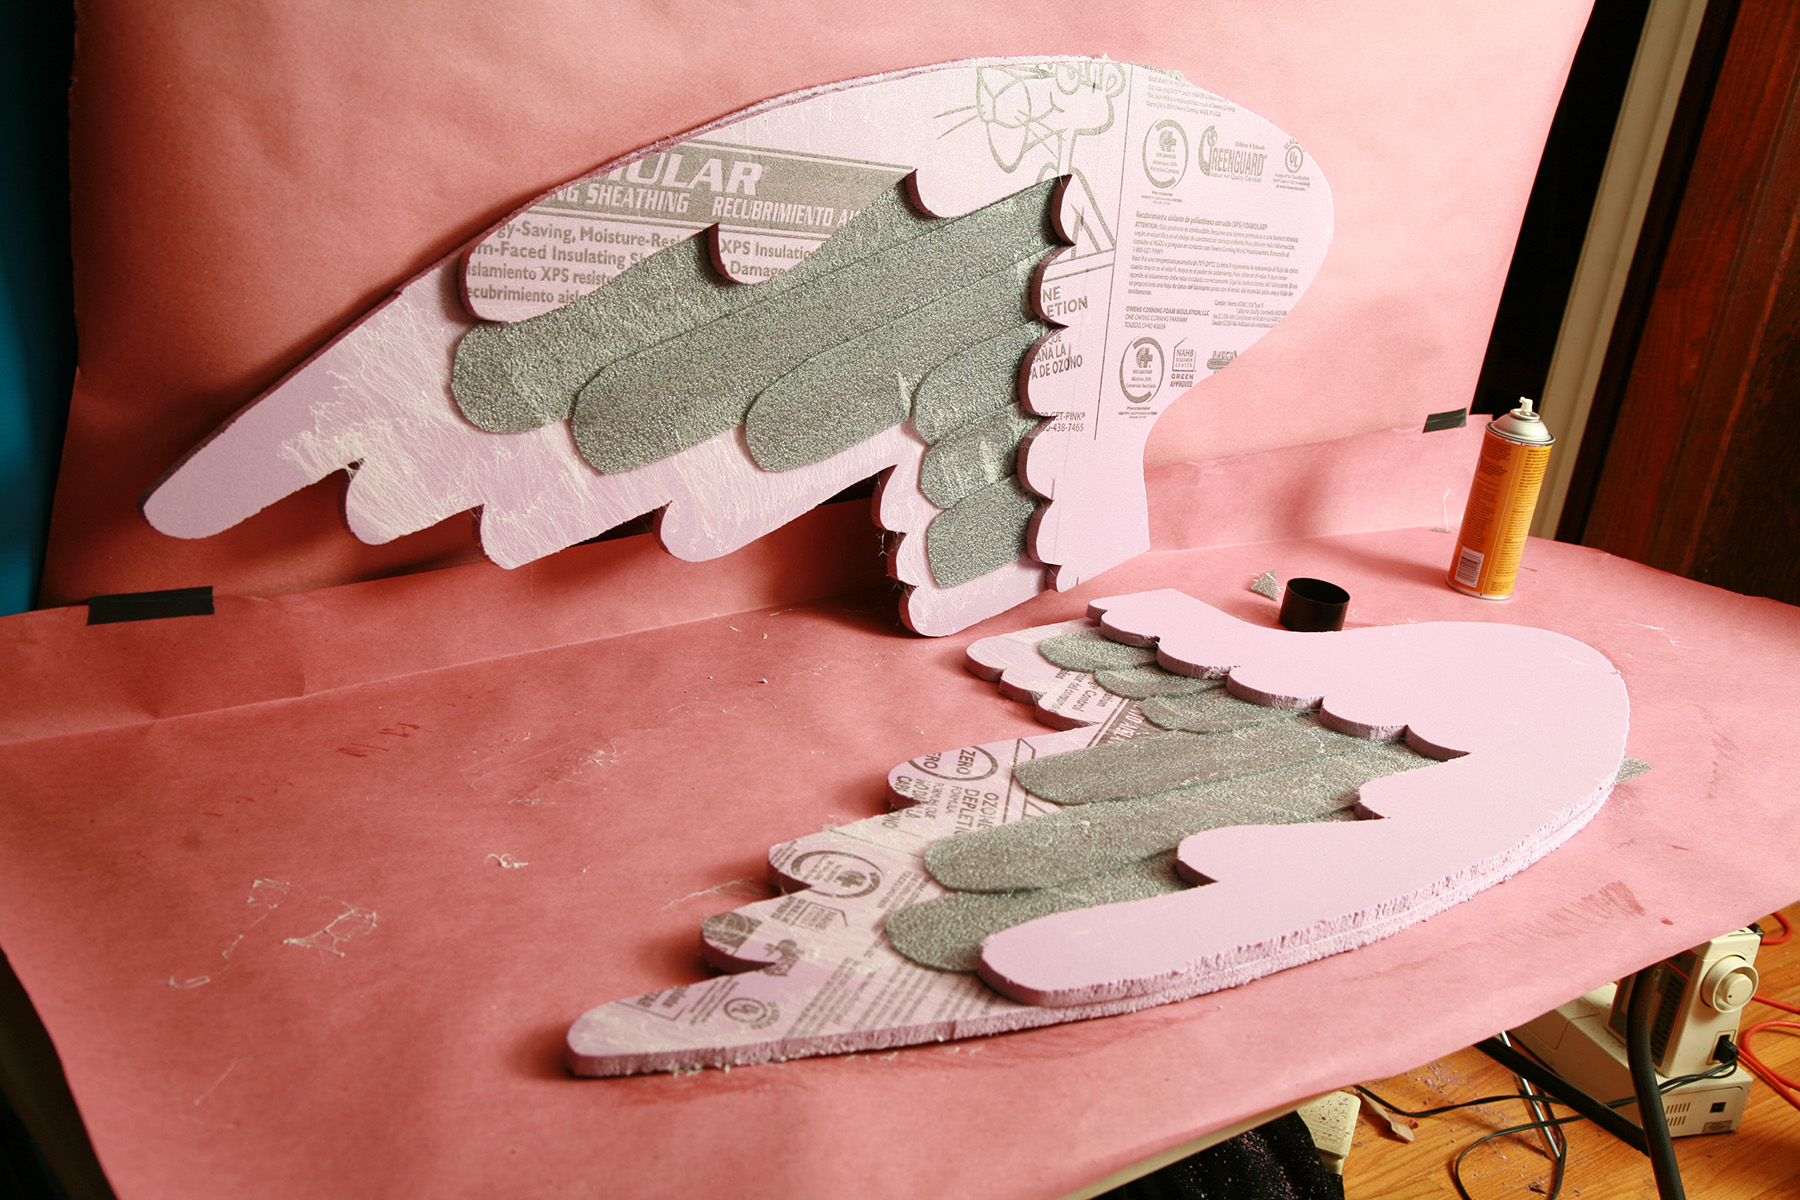 A set of large wings made from pink foam insulation.